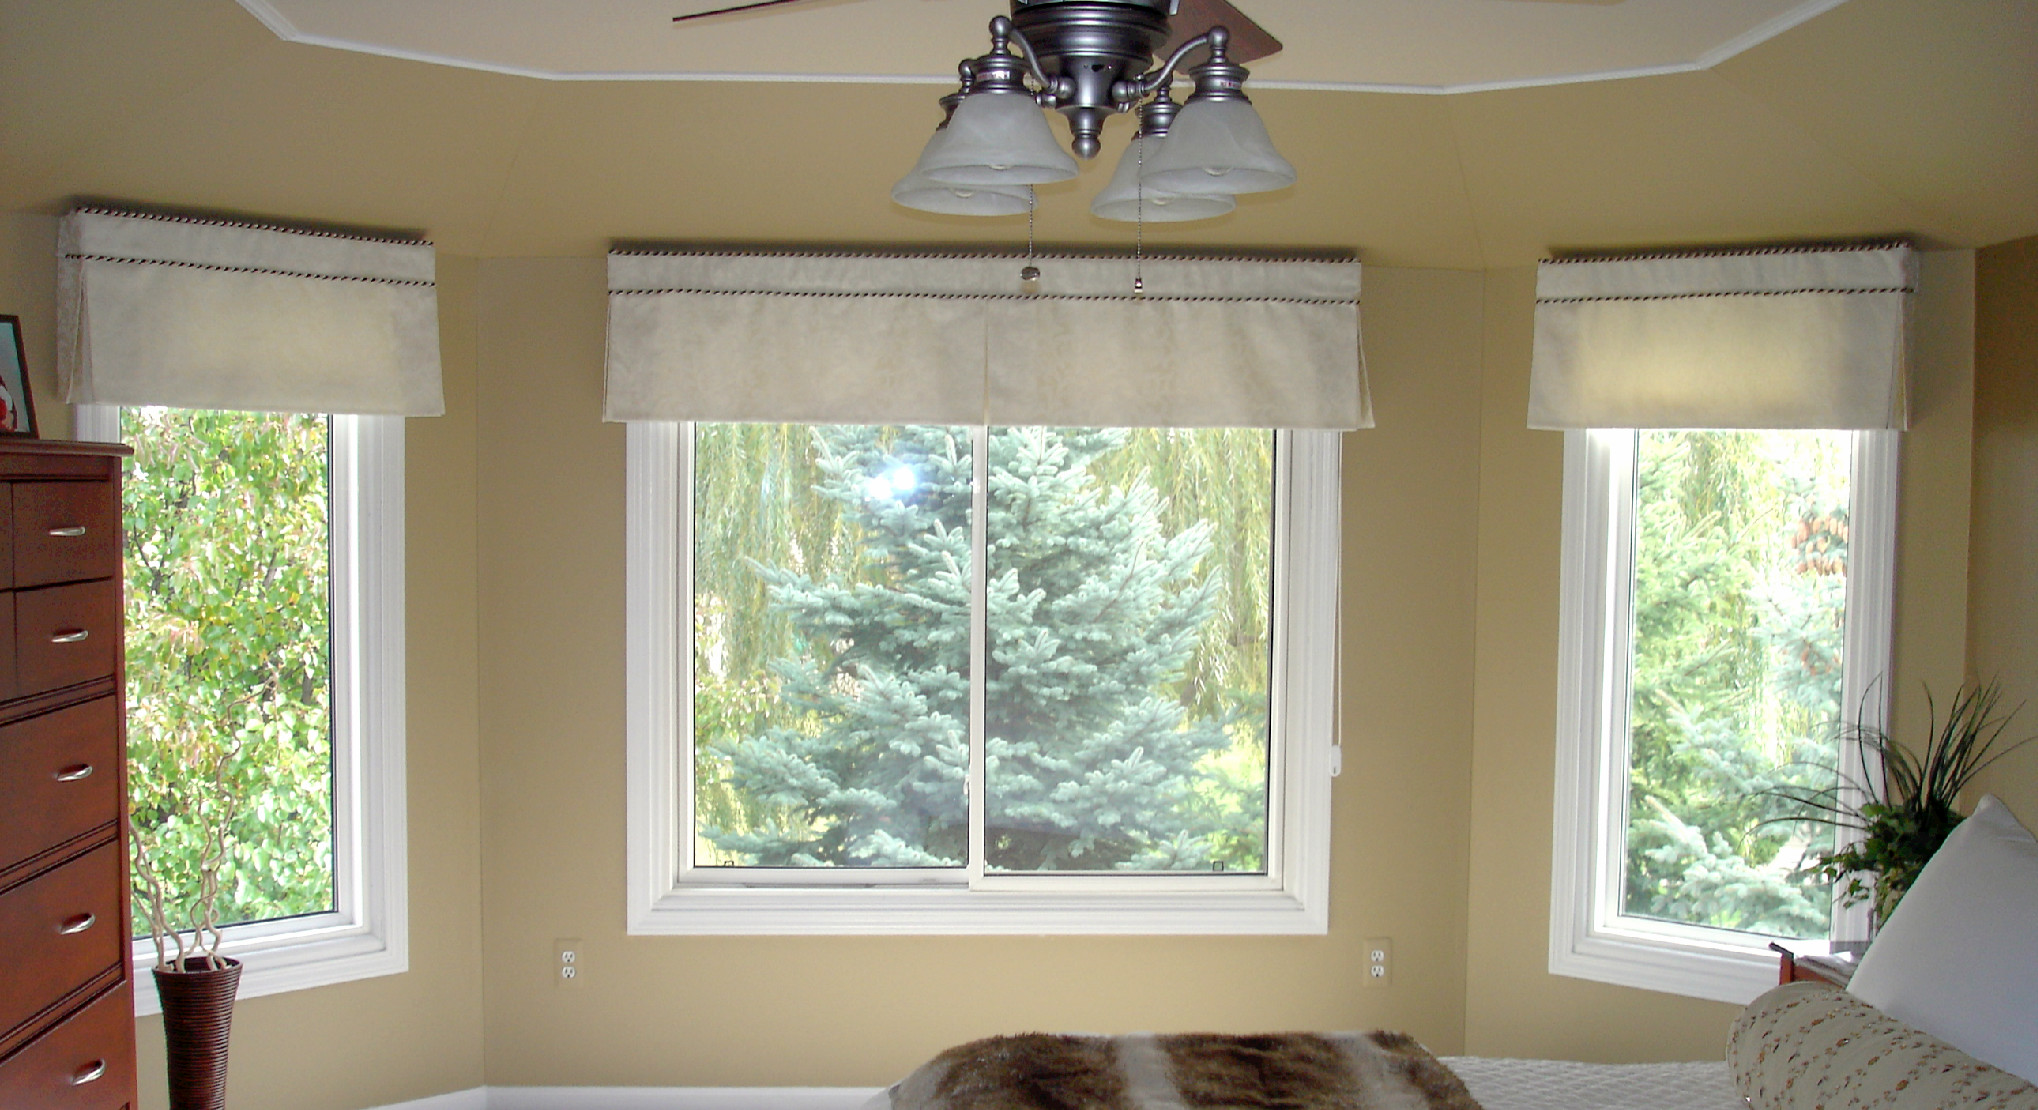 valances window treatments ideas window treatments. Black Bedroom Furniture Sets. Home Design Ideas